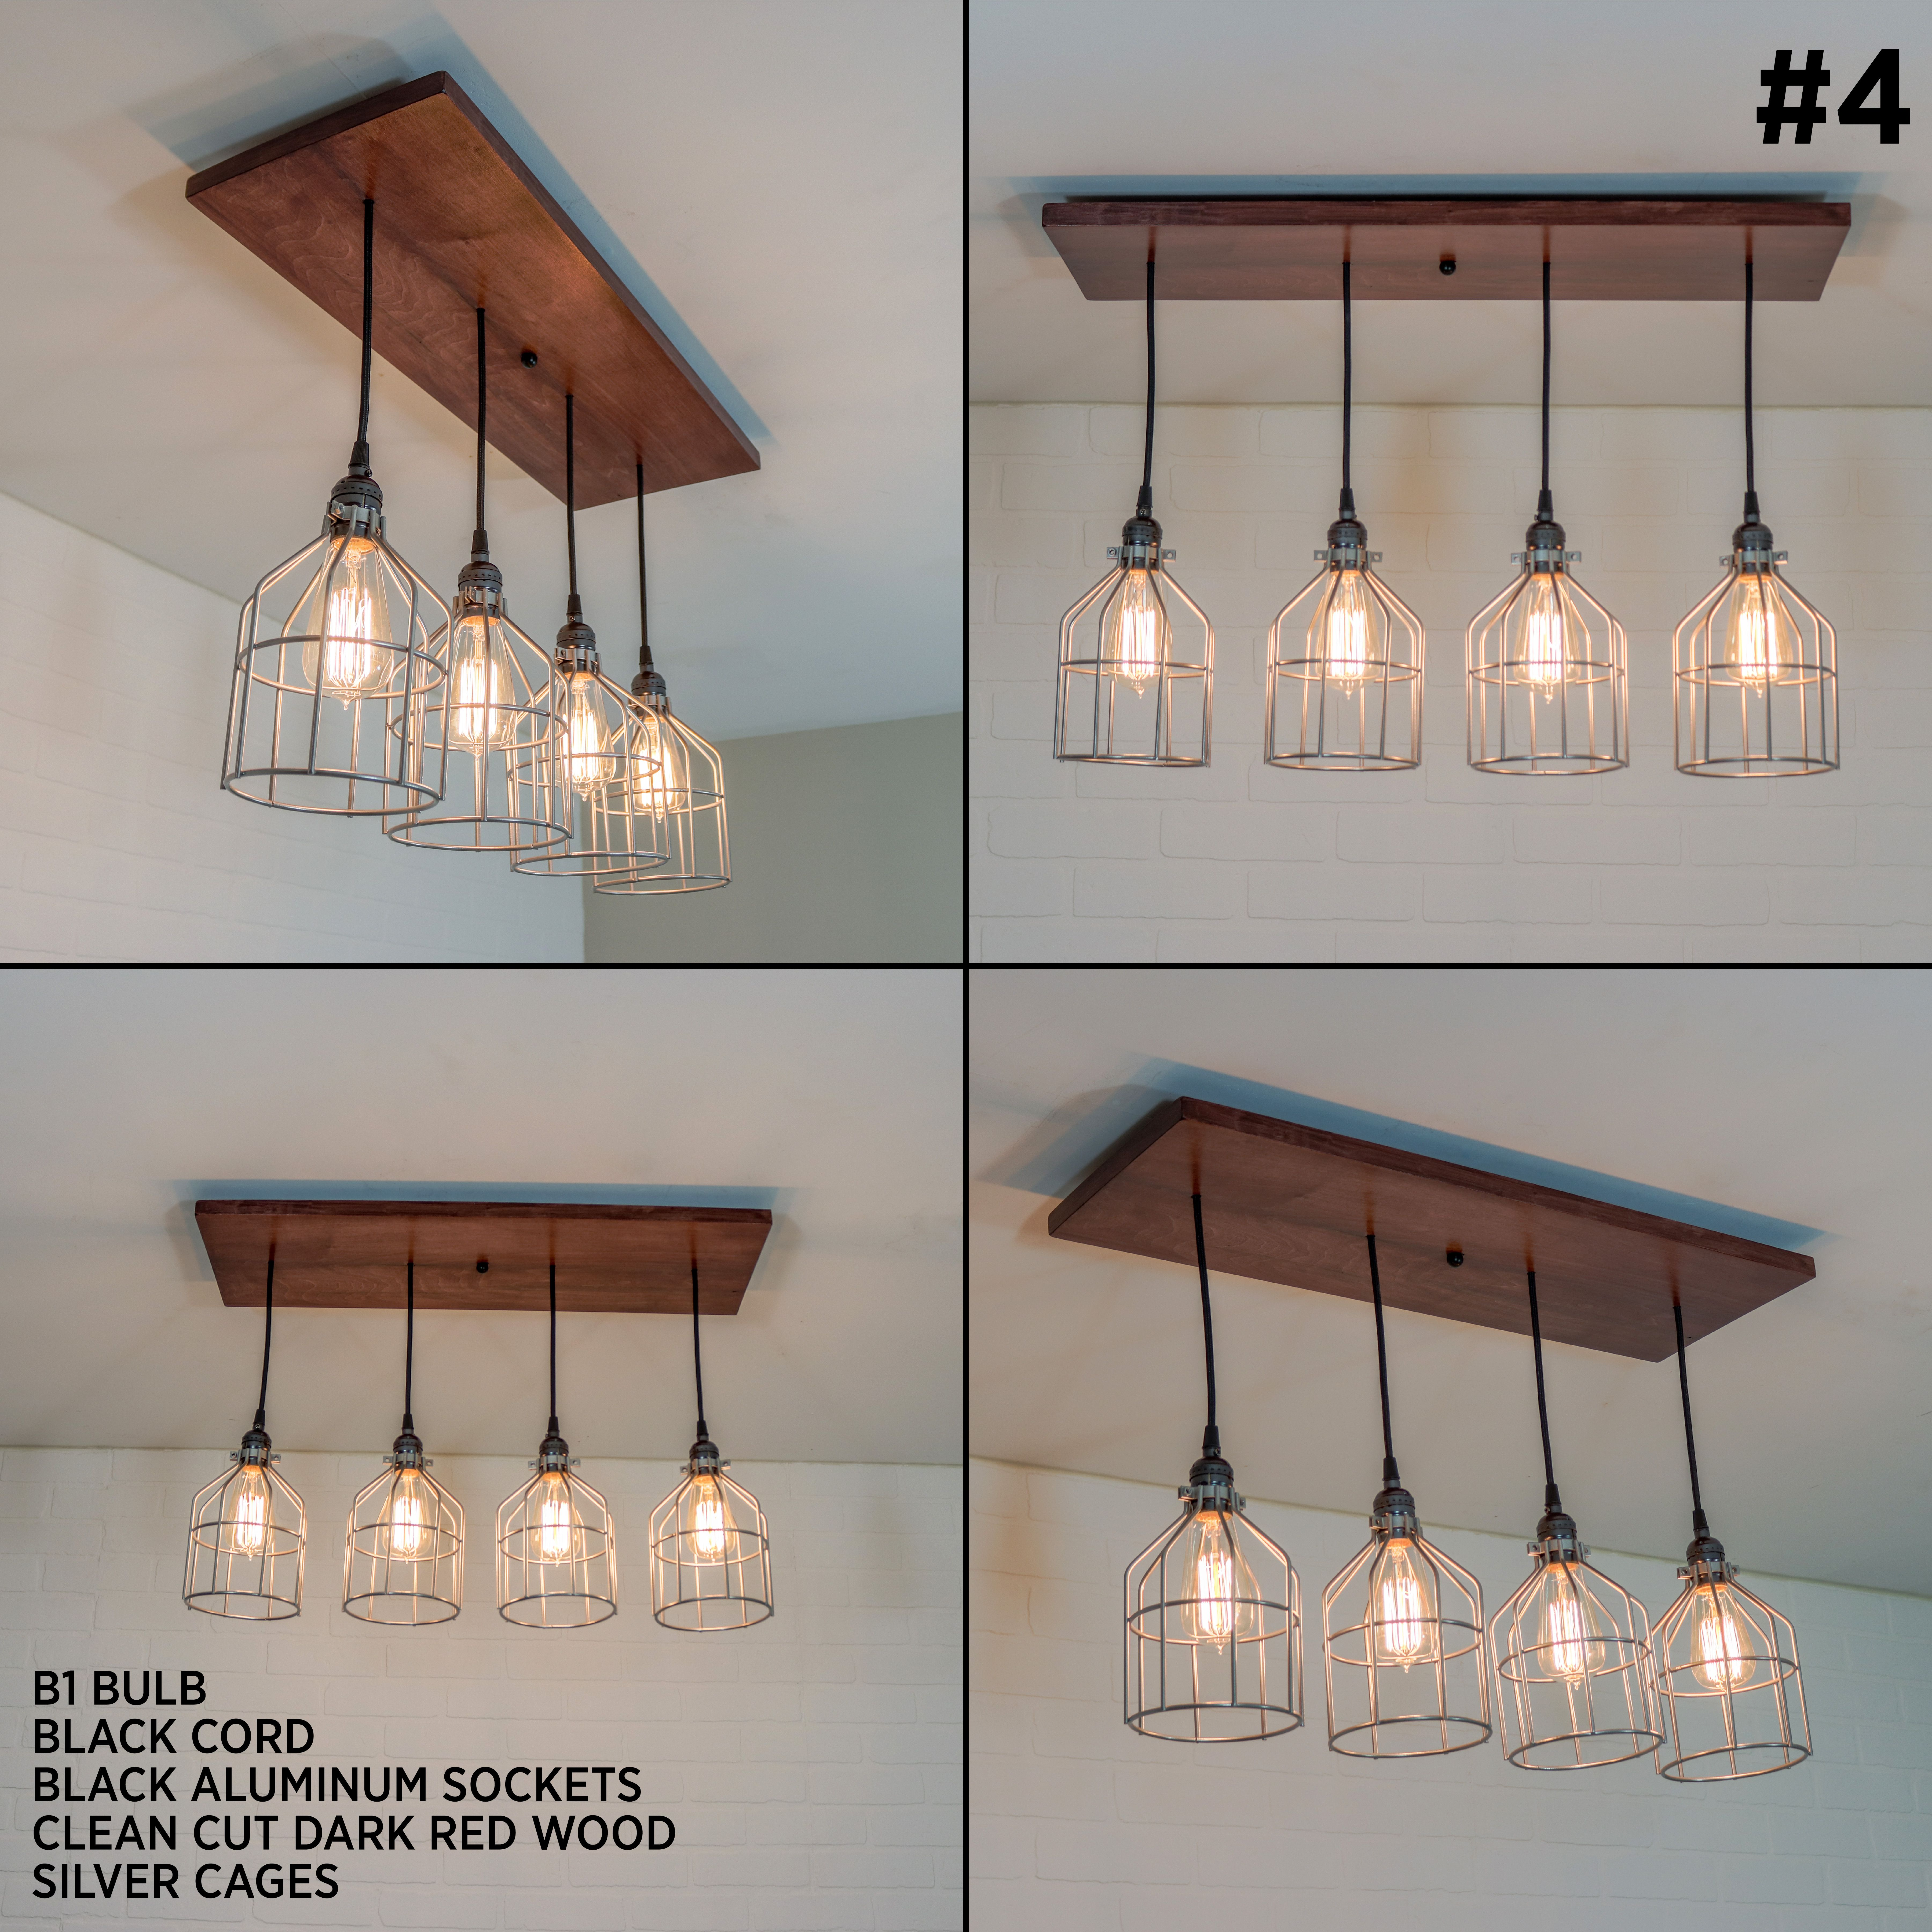 Kitchen Island Lighting Fixture Rustic Ceiling Chandelier Edison Pendant Light With 4 Pendants Wood Kitchen Lighting Fixture Rustic Light Fixtures Lighting Fixtures Kitchen Island Wood Ceiling Lights